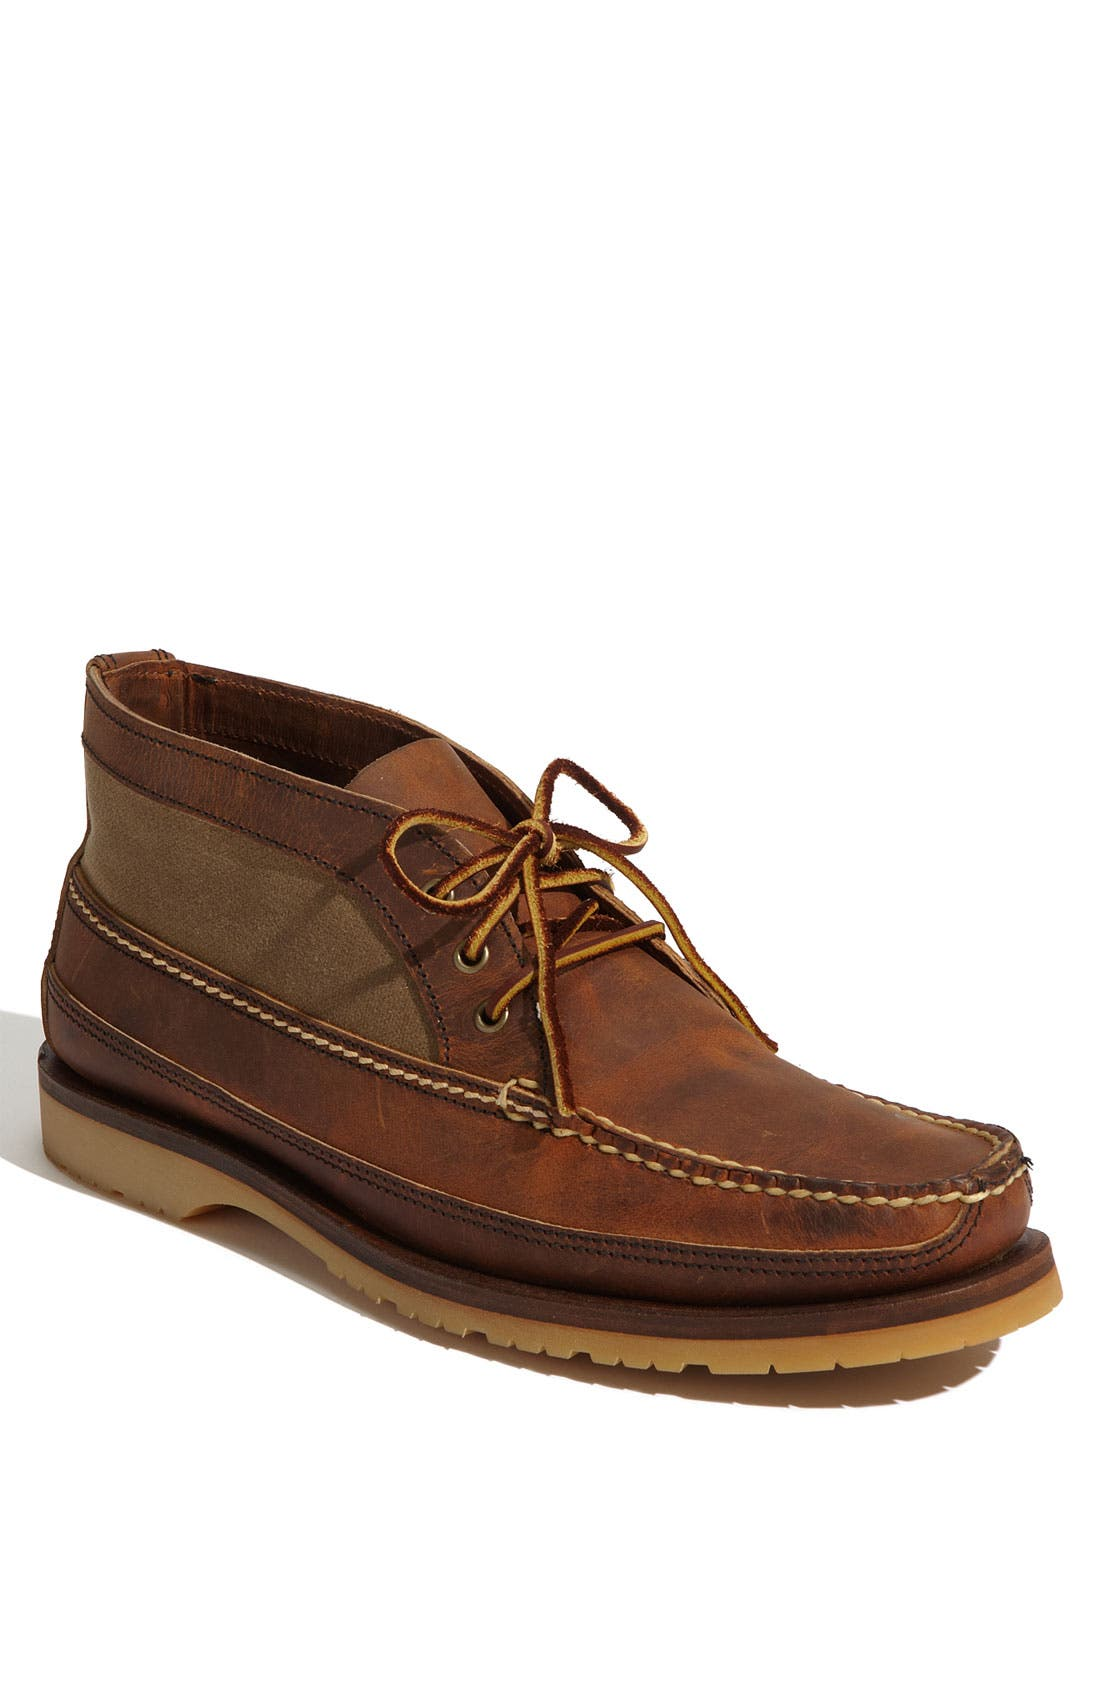 Alternate Image 1 Selected - Red Wing 'Wabasha' Chukka Boot